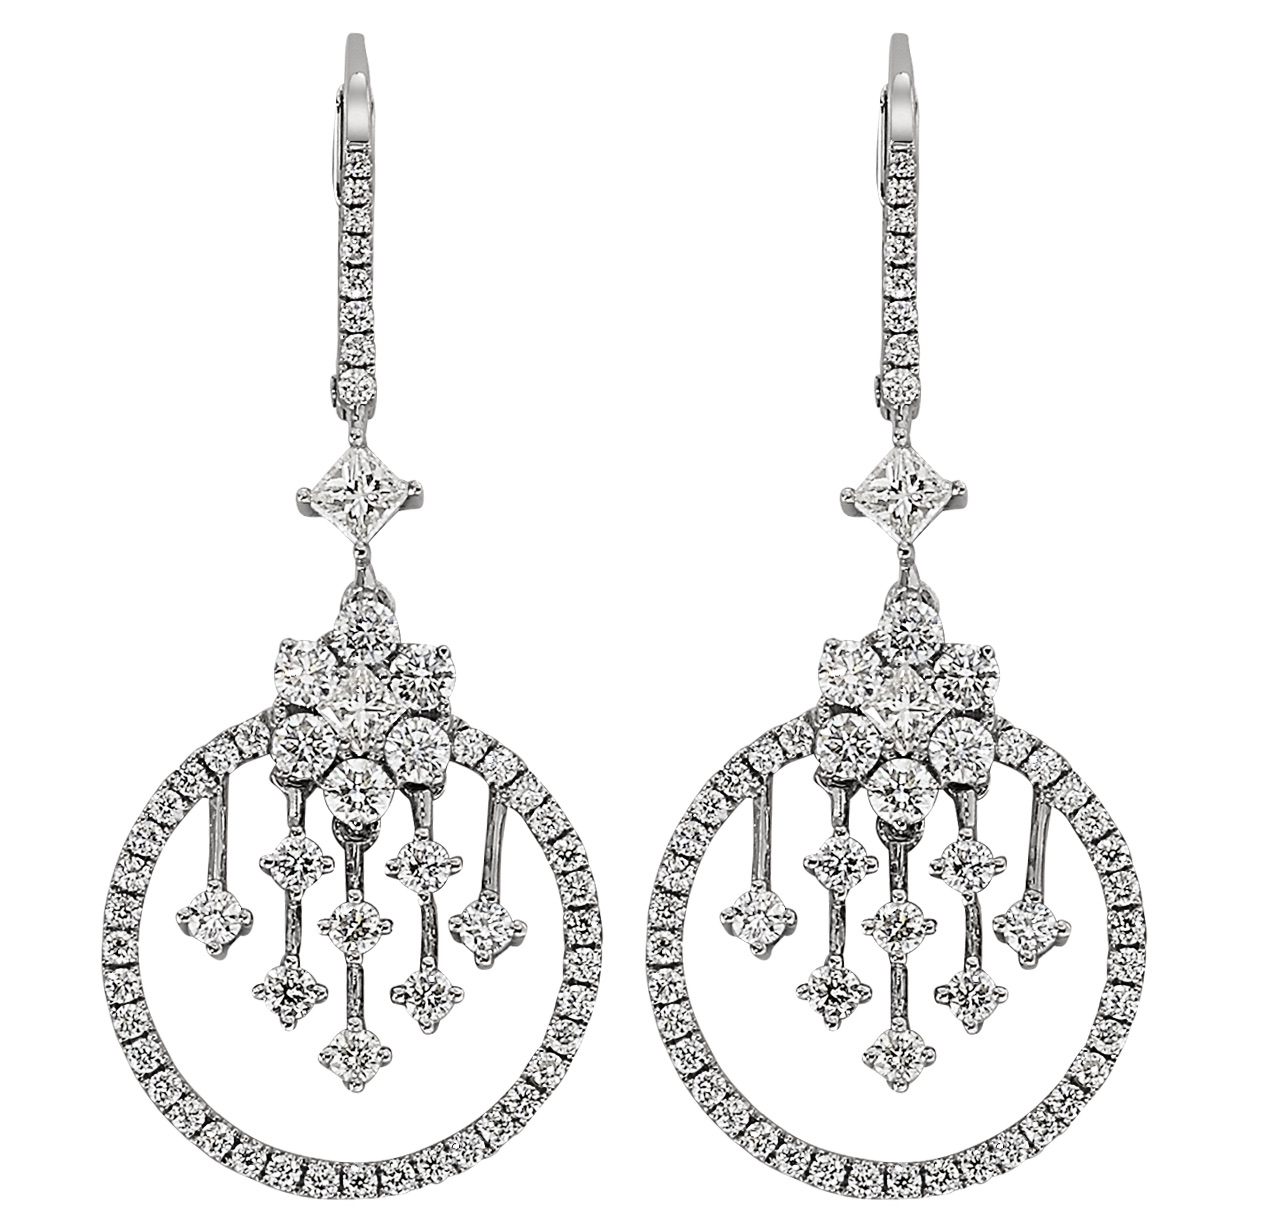 Cordova diamond earrings | JCK On Your Market